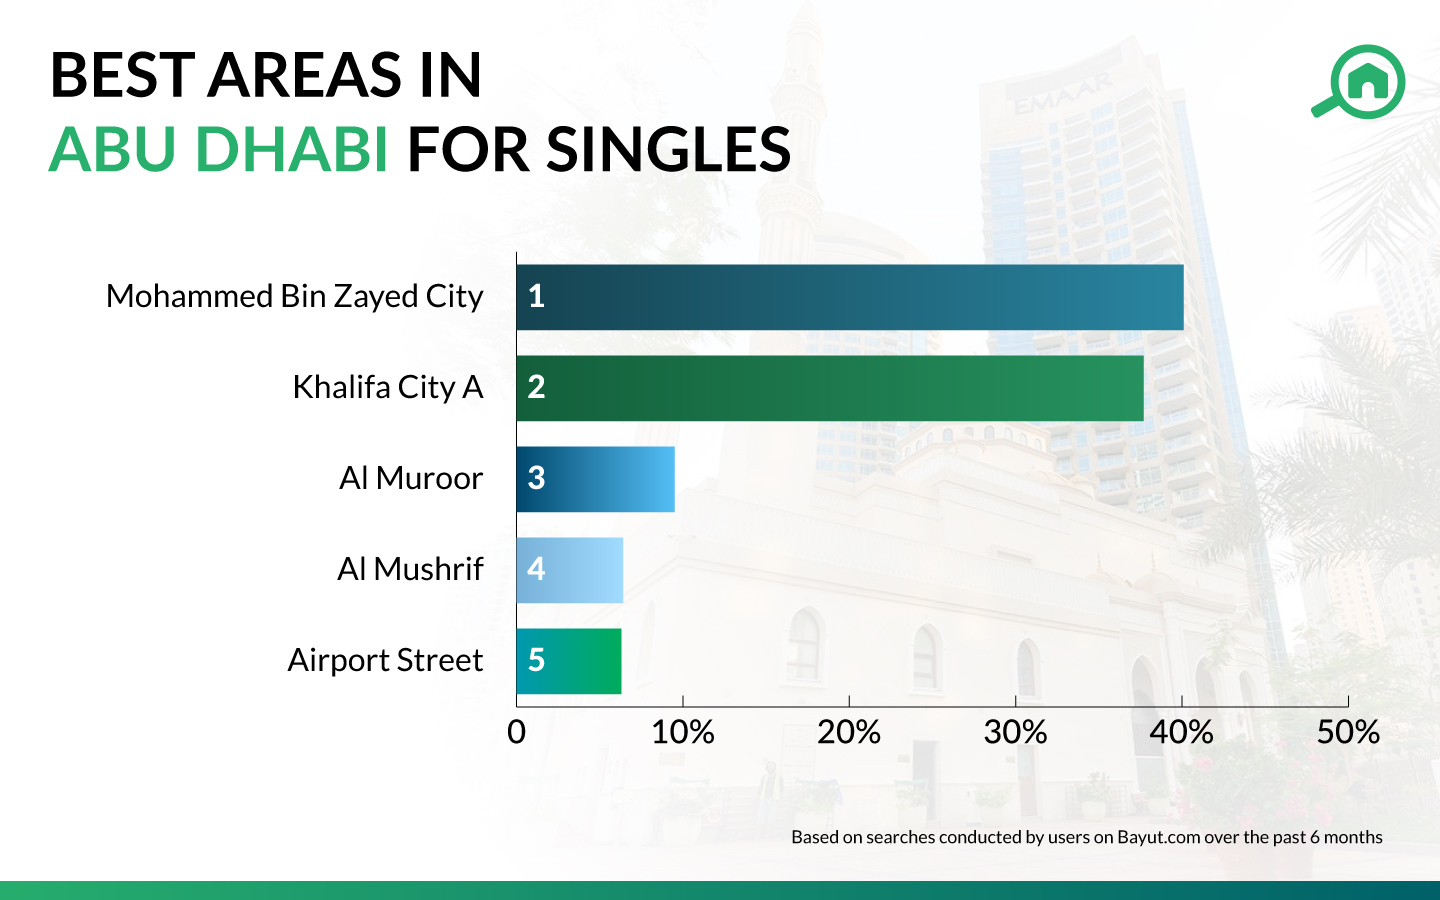 Best areas in Abu Dhabi for bachelors